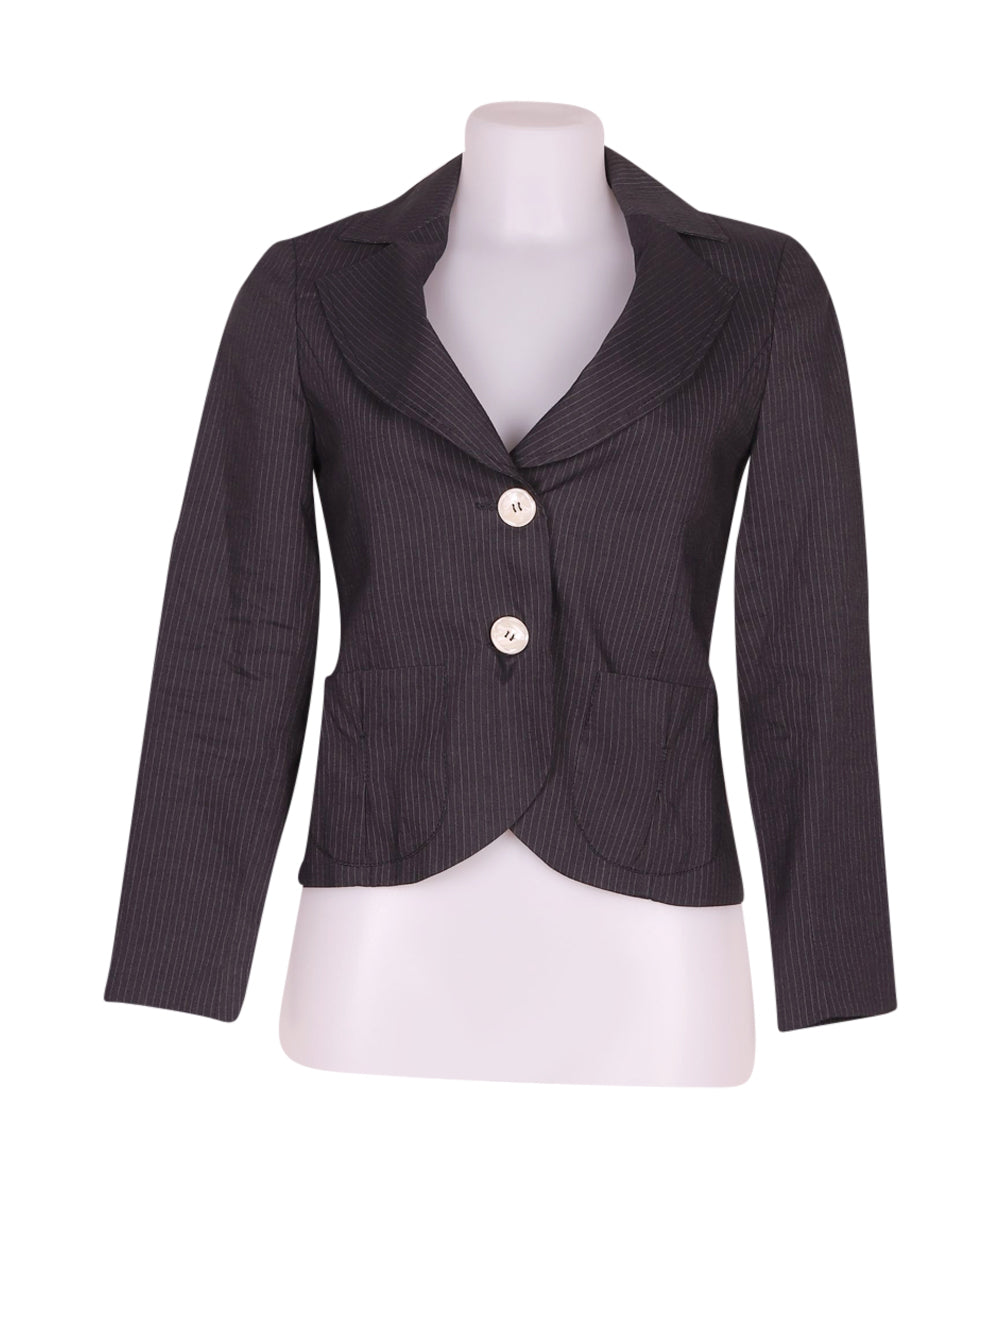 Front photo of Preloved Nell&me Grey Woman's blazer - size 8/S